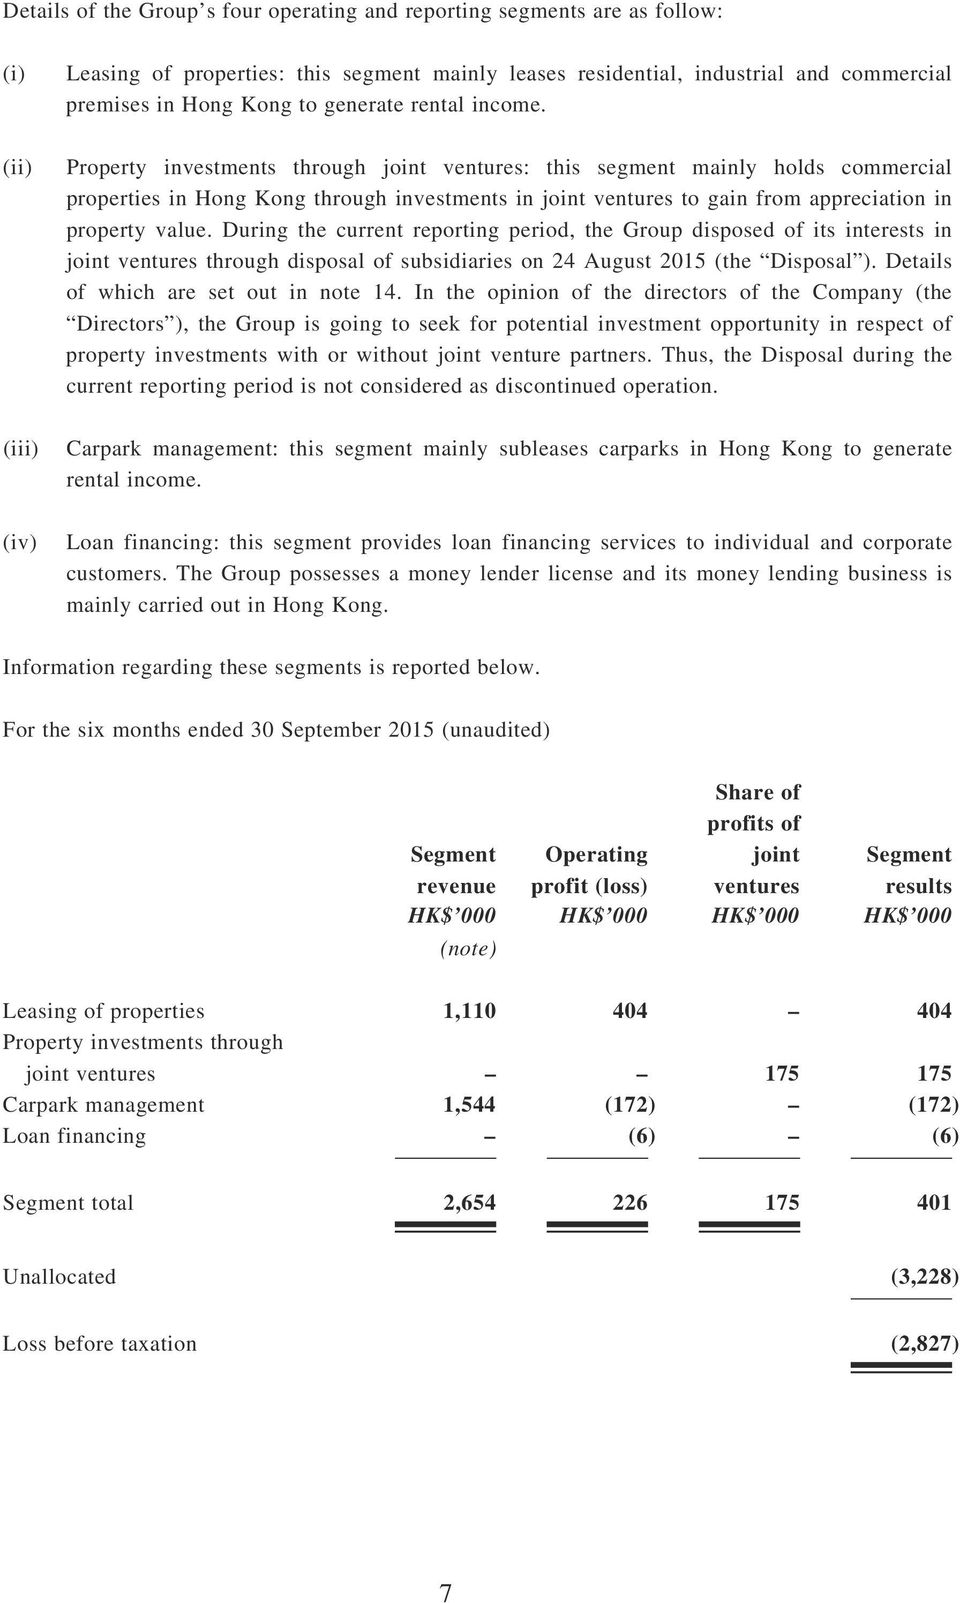 (ii) Property investments through joint ventures: this segment mainly holds commercial properties in Hong Kong through investments in joint ventures to gain from appreciation in property value.